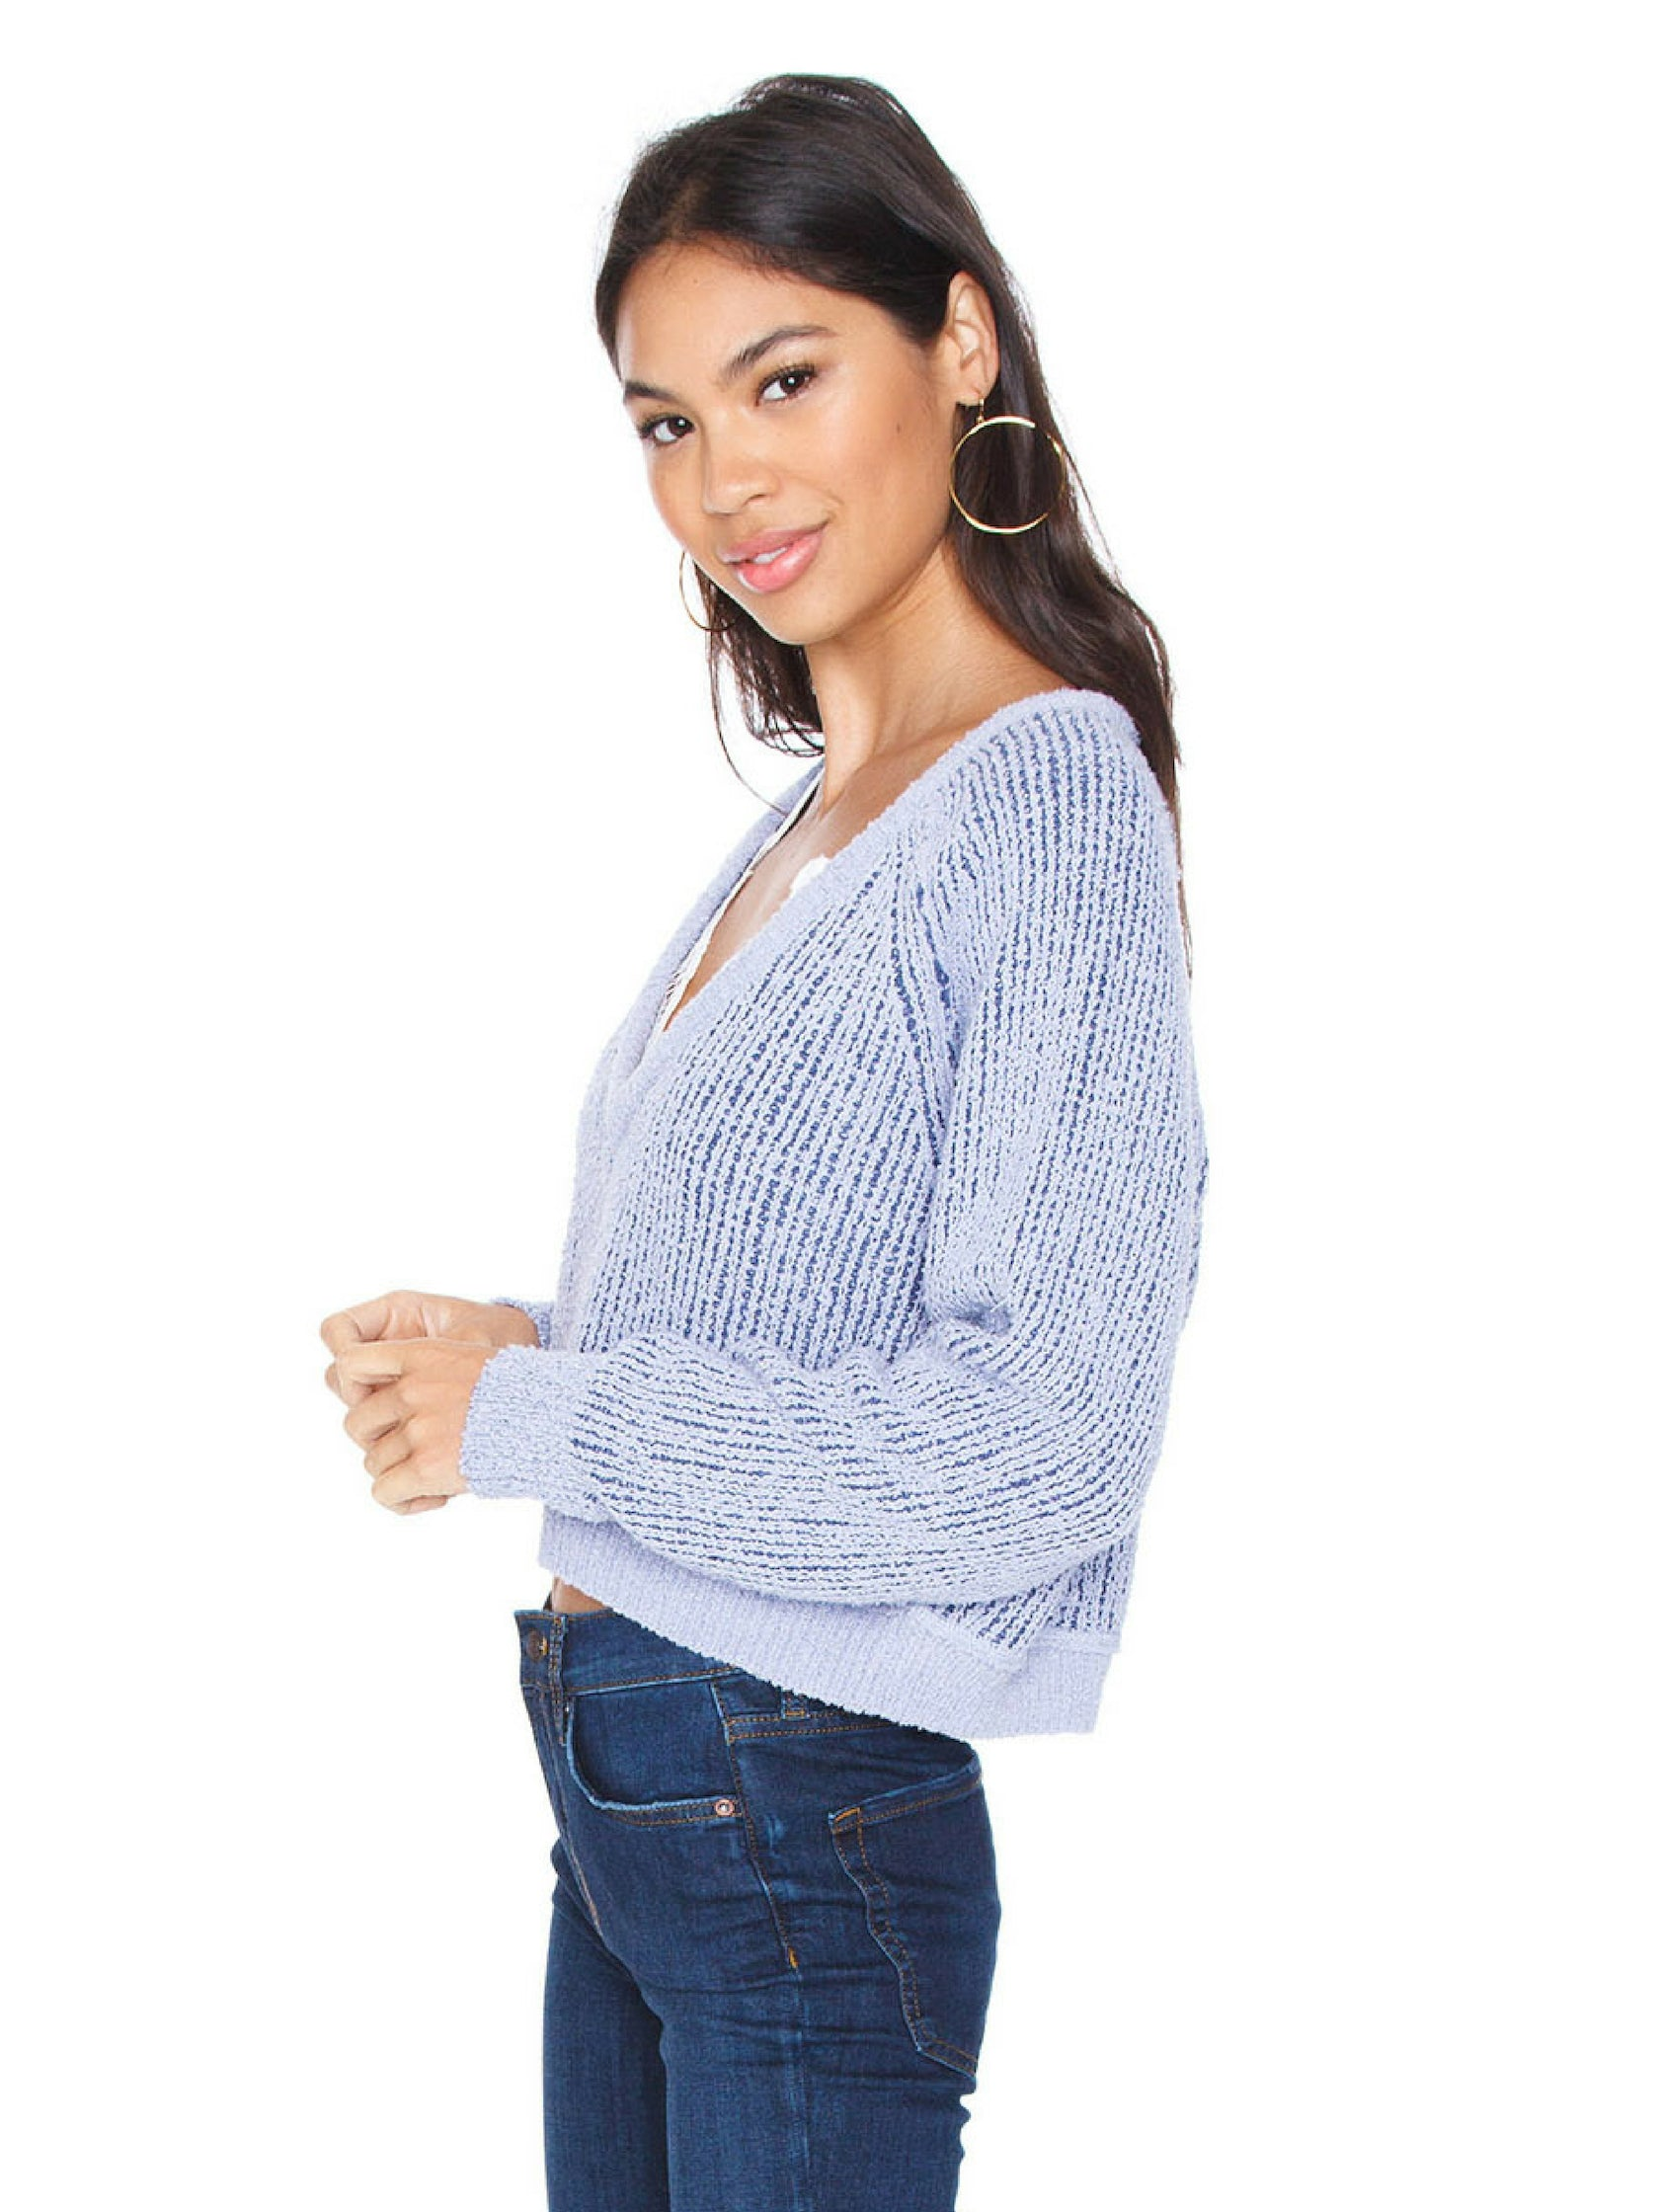 Women wearing a sweater rental from Free People called V Neck Sweater